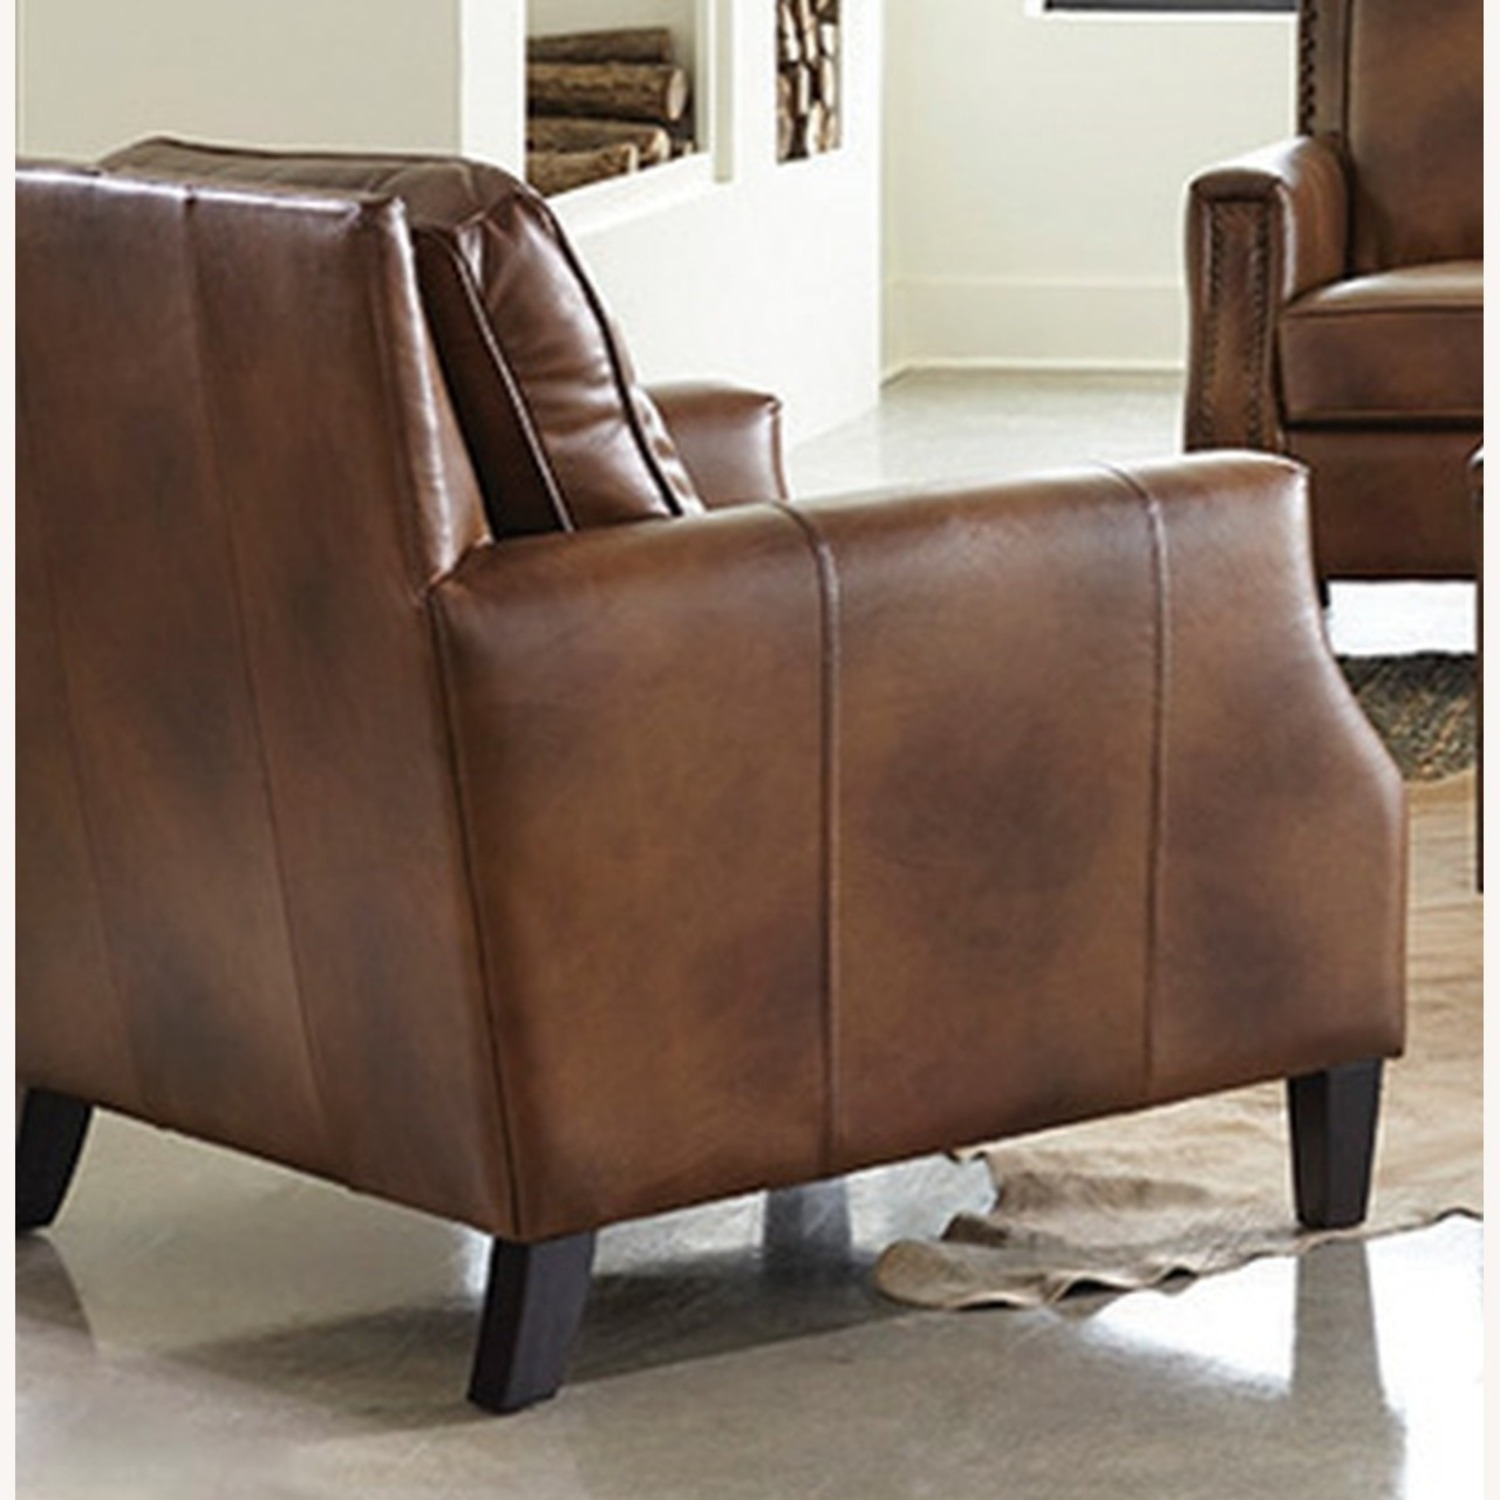 Chair In Brown Sugar Leather Upholstery - image-0